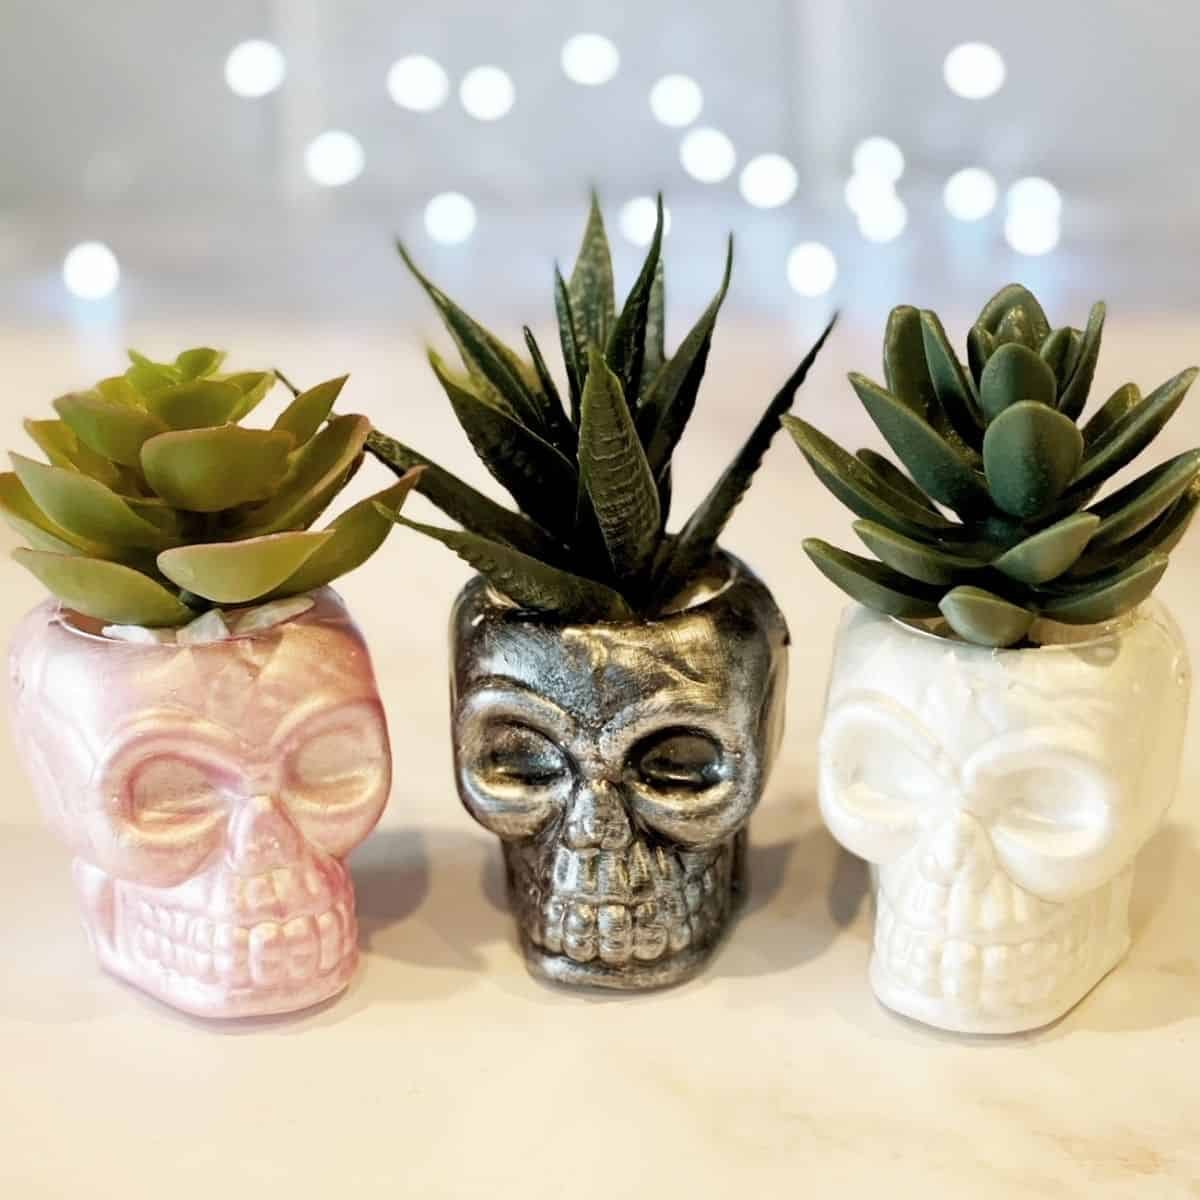 Thes 3 DIY Skull Crafts are perfect for getting yourself and home in the Halloween mood.